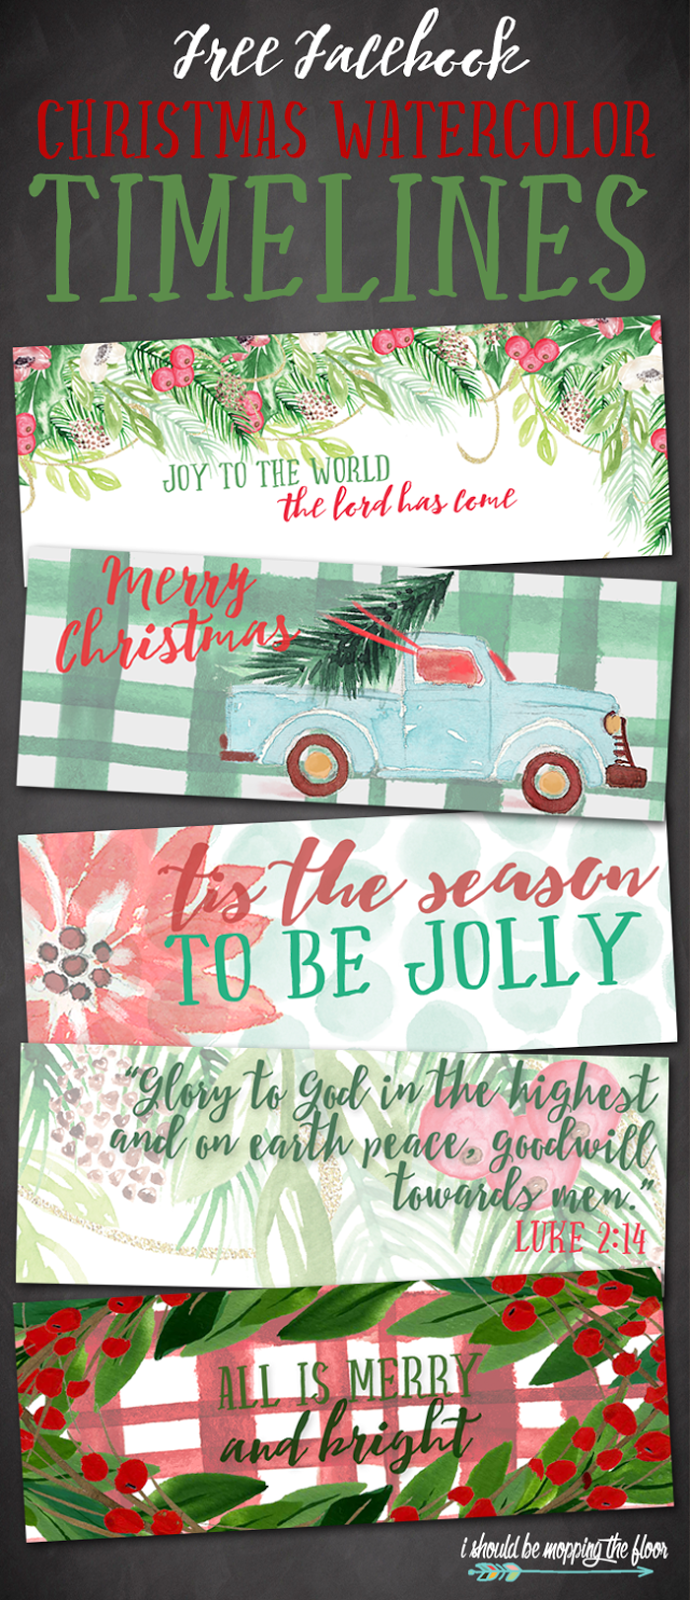 Free Facebook Christmas Watercolor Timelines | Download one of five free holiday watercolor timelines to give your profile a festive touch!